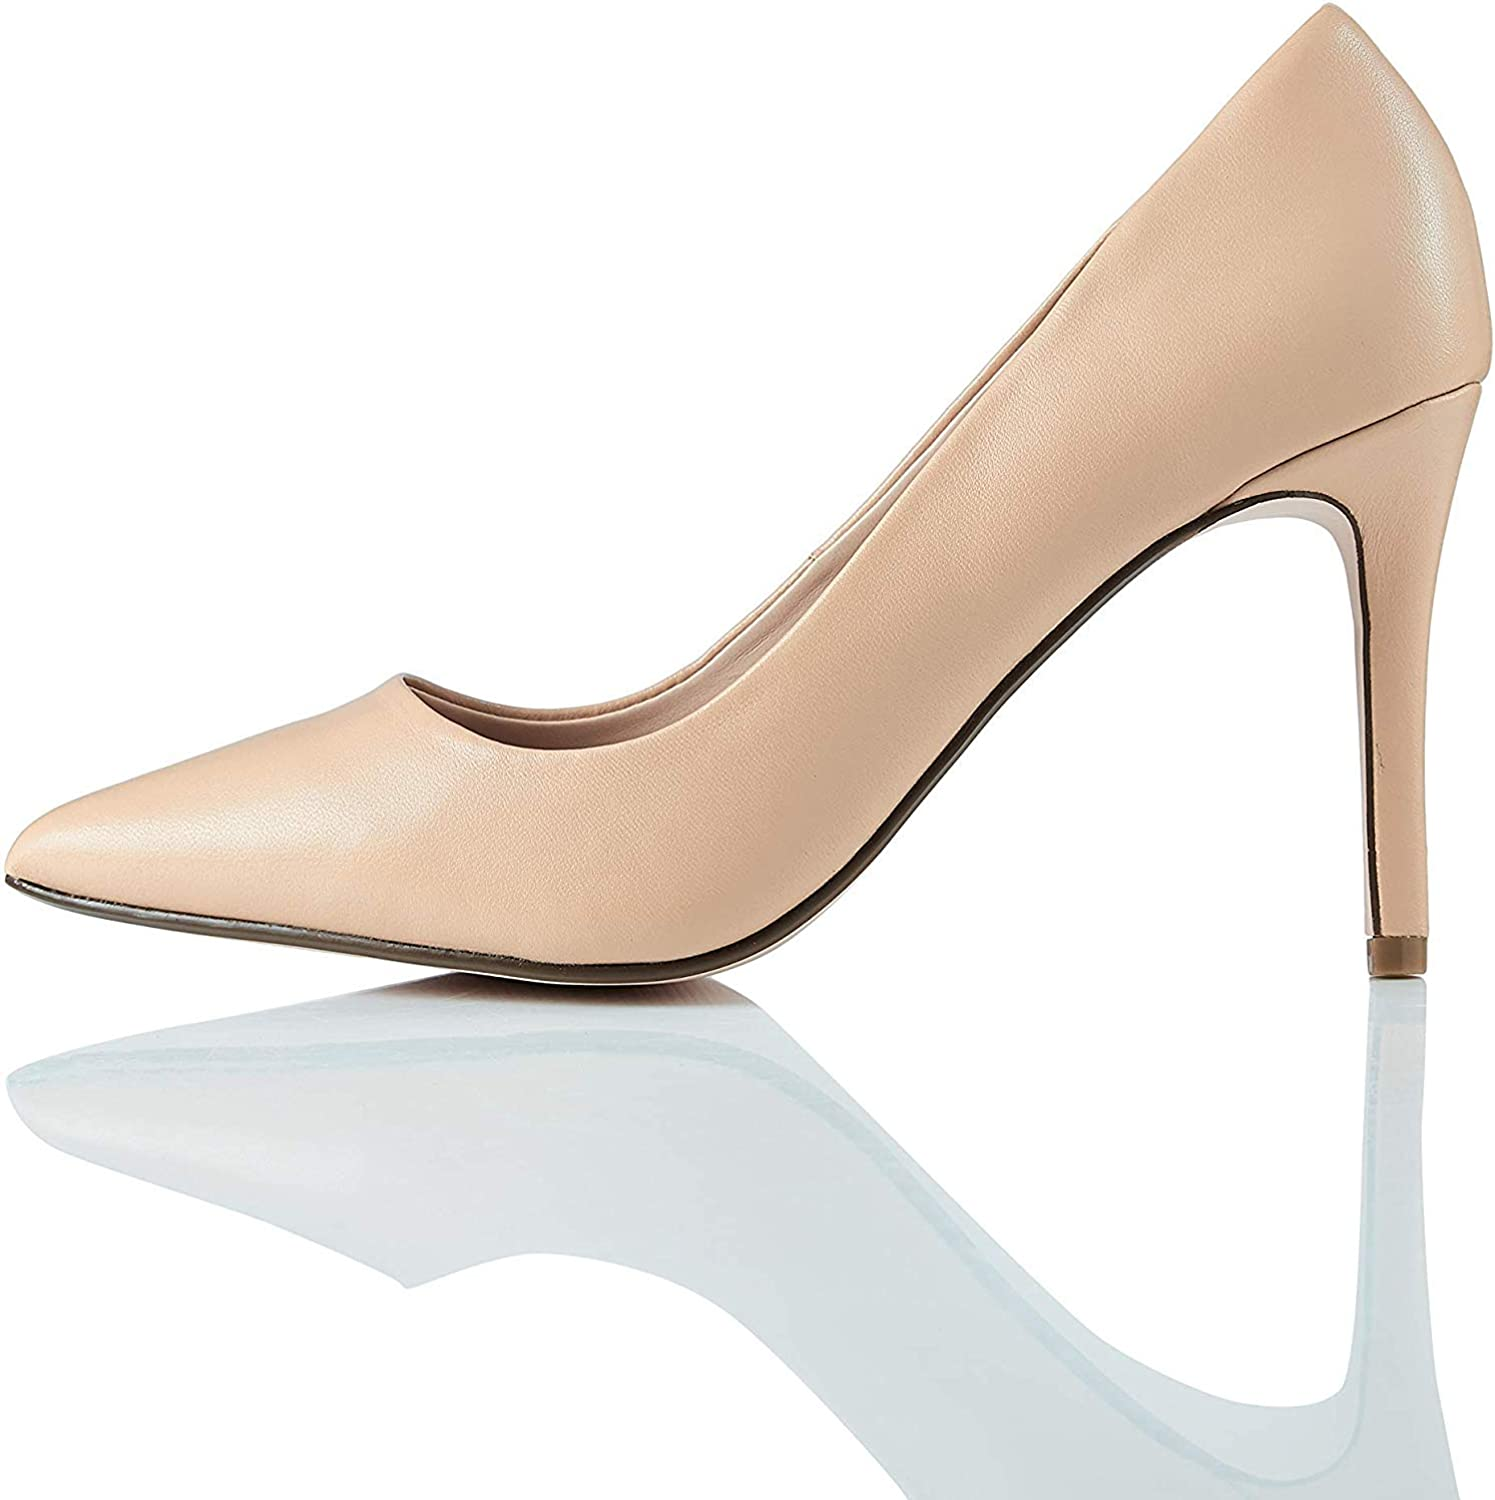 find. Women's Special price for a limited time New York Mall High Pumps Heel Leather